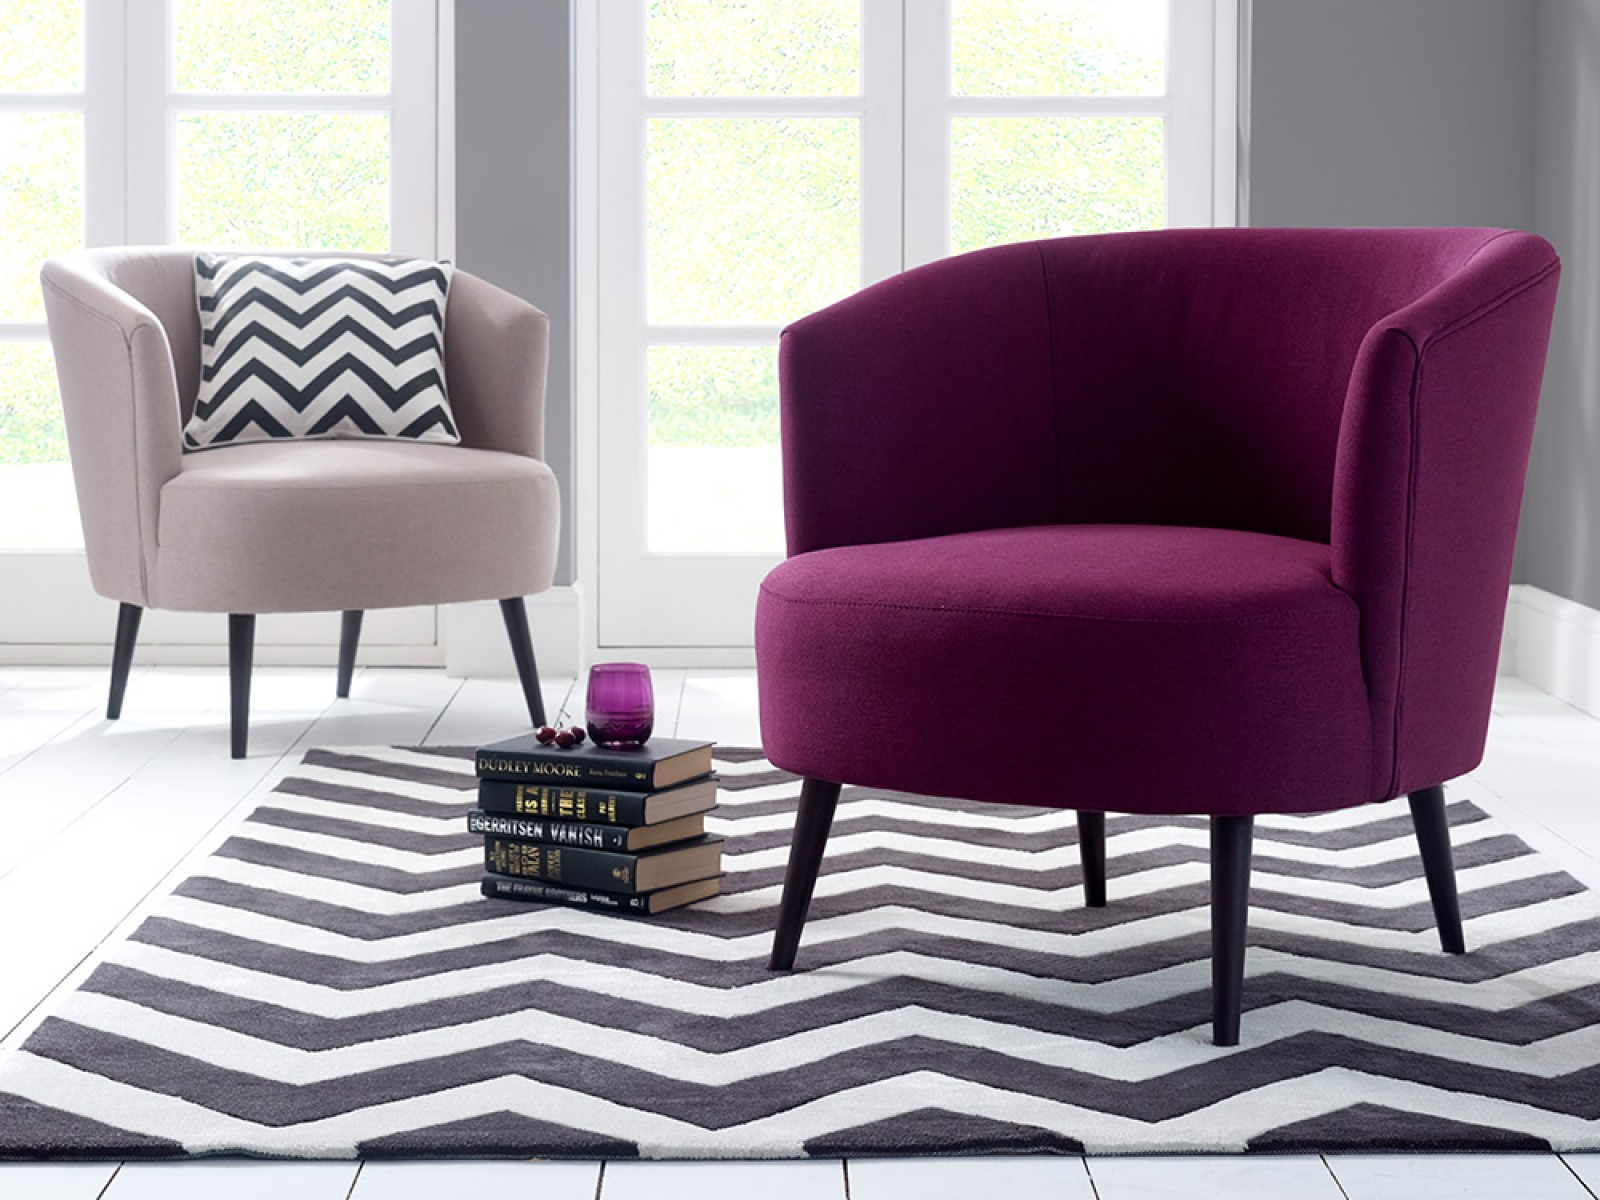 Soft Chairs For Bedrooms How To Cheer The Interior With Pink Accent Chair Homesfeed